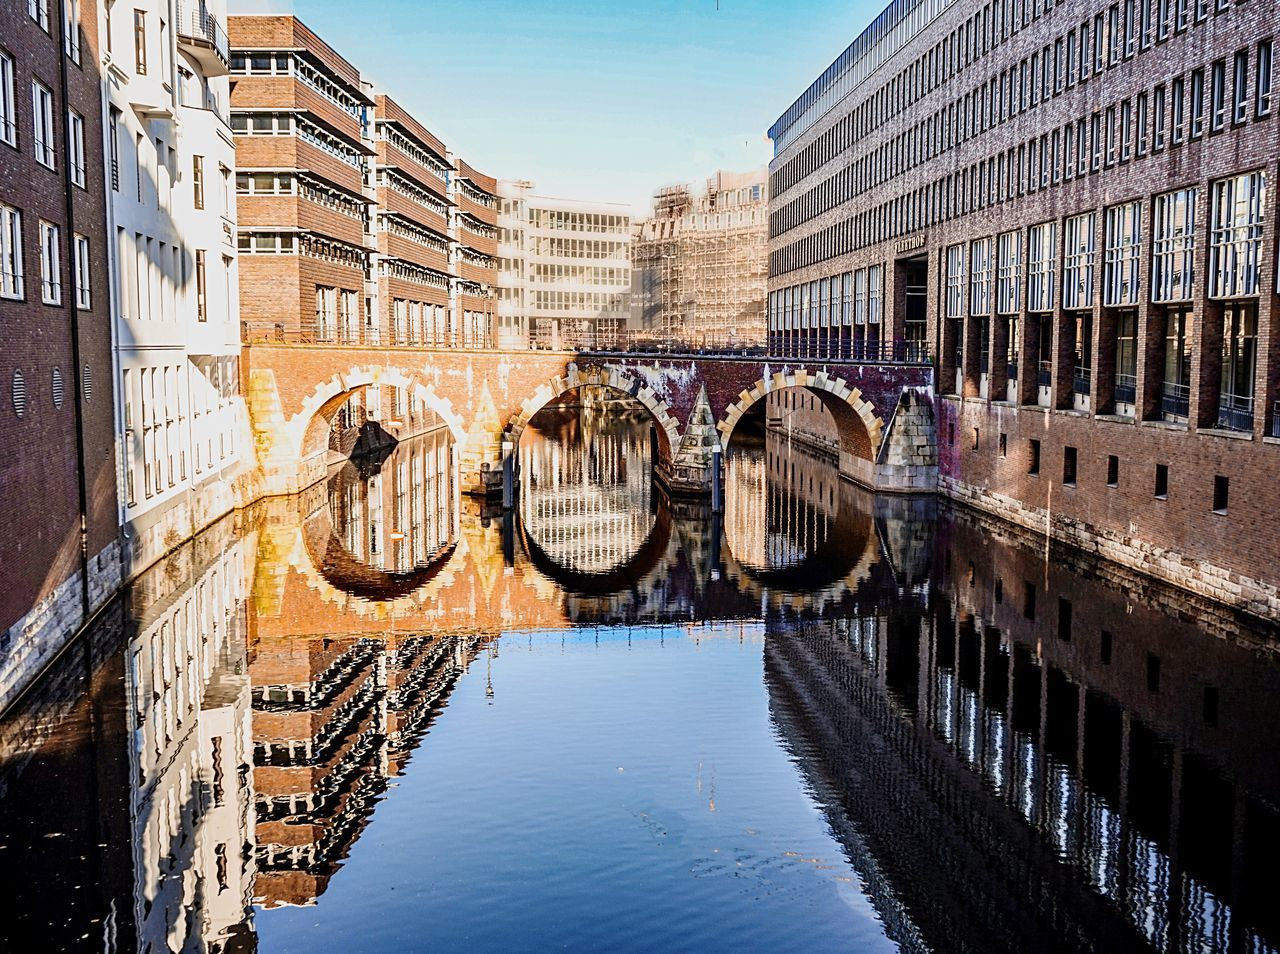 Reflection Architecture Water Building Exterior Built Structure Canal Outdoors City No People Day Bridge - Man Made Structure Sky Hydroelectric Power Fleet Canals Nature City Rural Scene